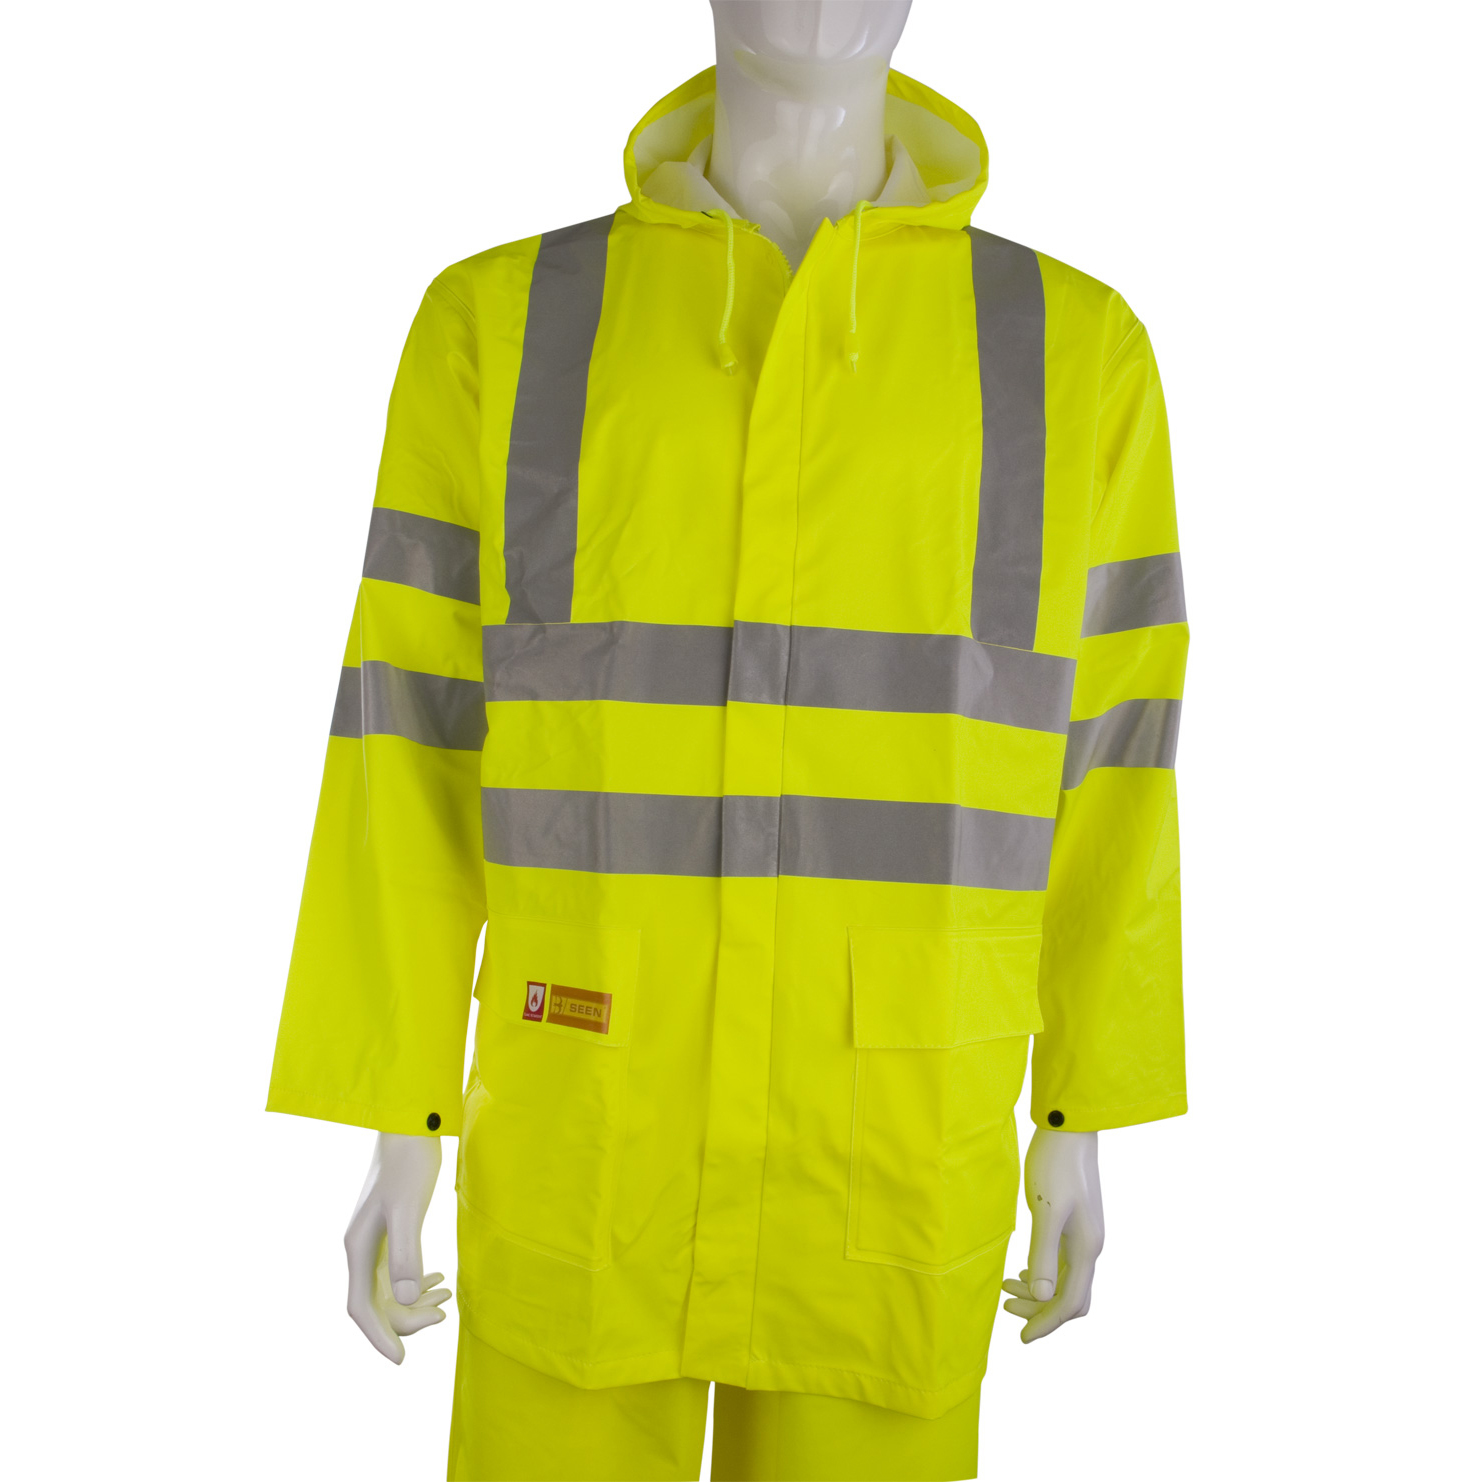 B-Seen Fire Retardant Jacket Anti-static 5XL Sat Yellow Ref CFRLR55SY5XL *Up to 3 Day Leadtime*